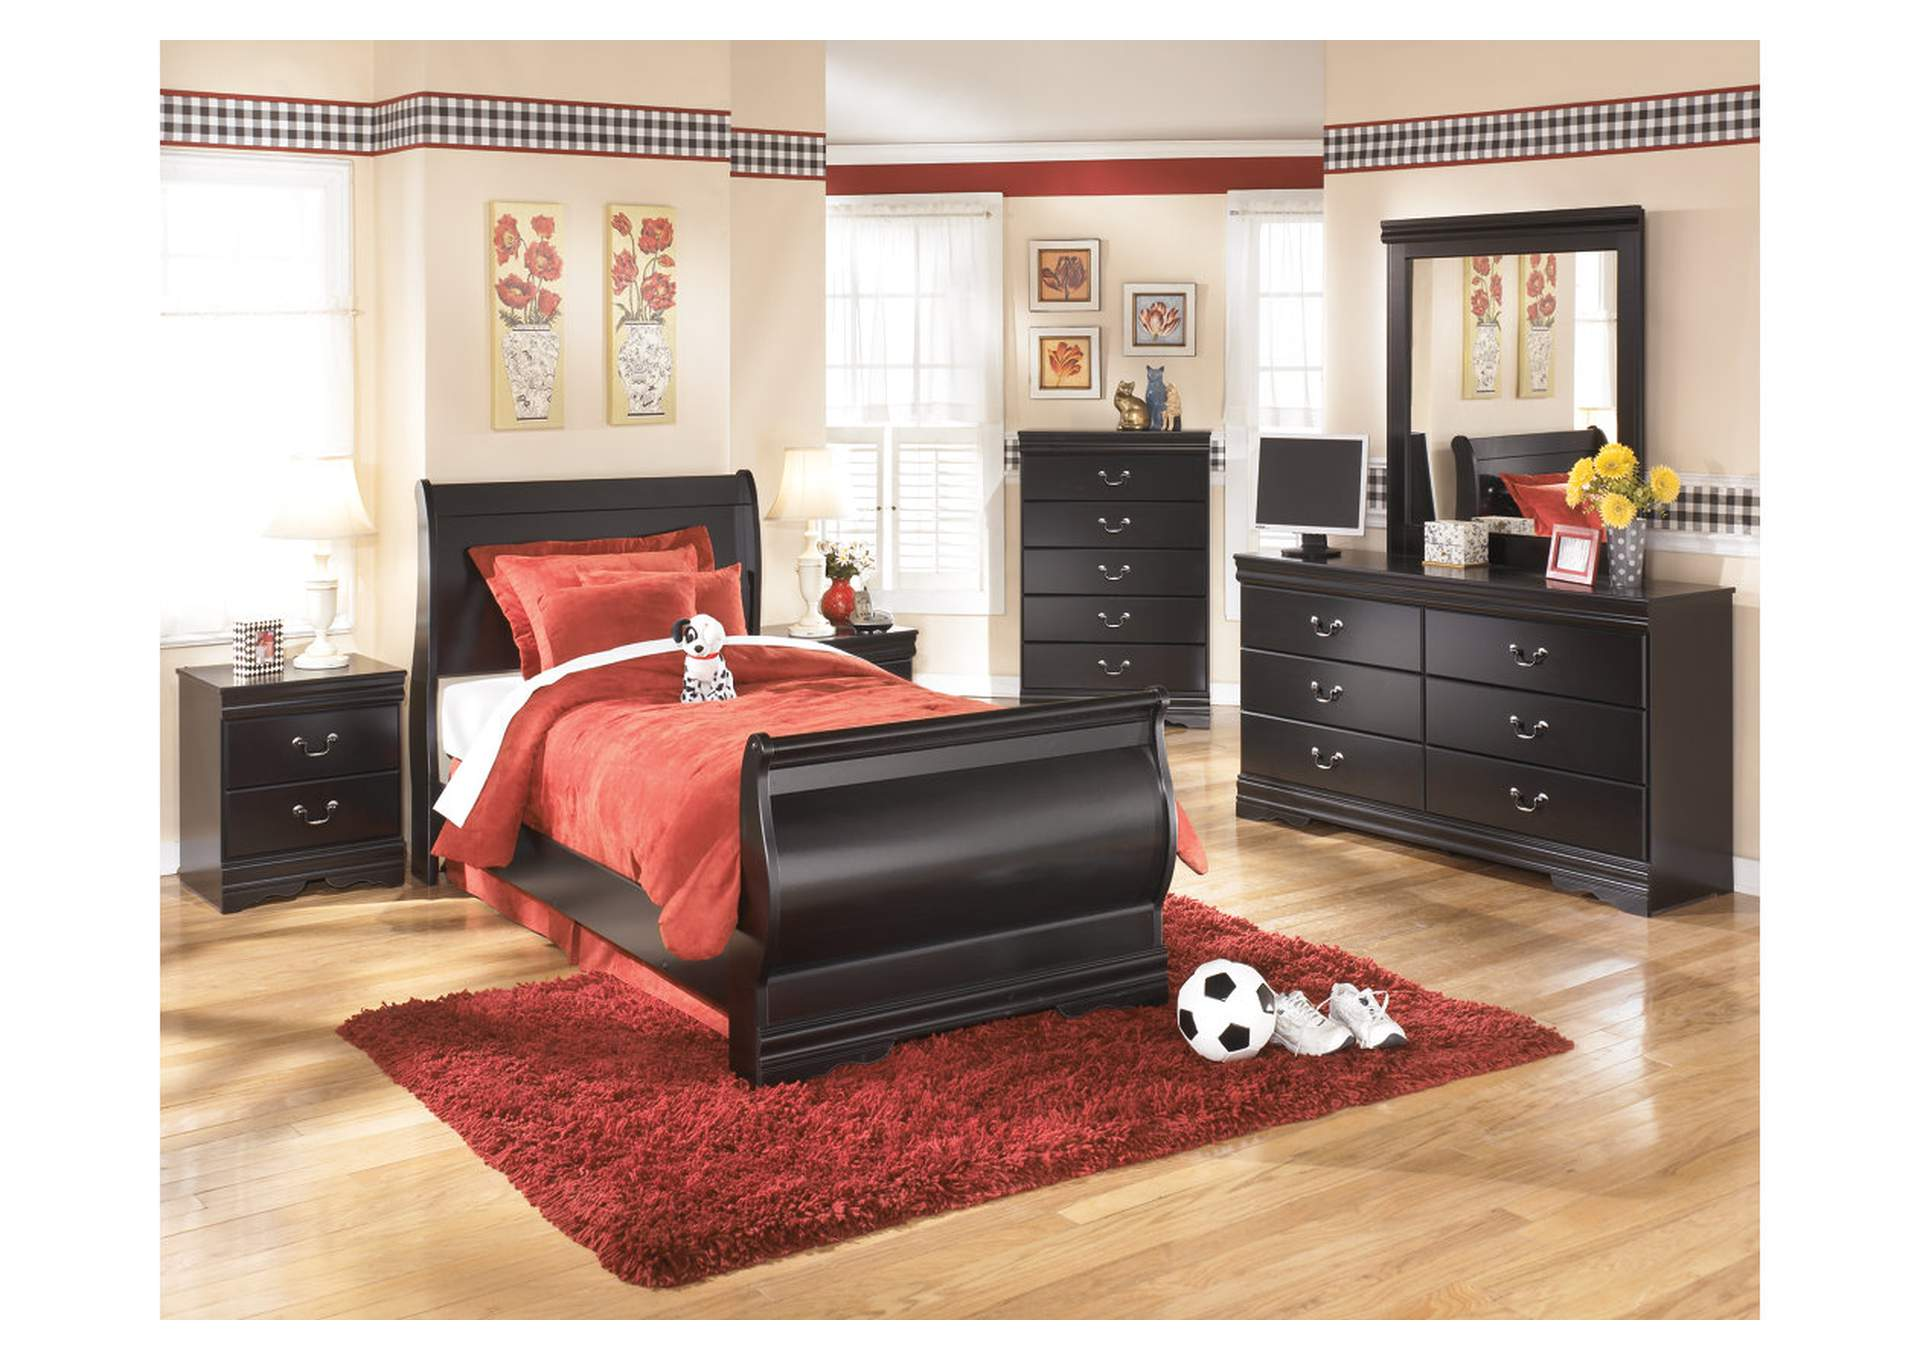 Huey Vineyard Twin Sleigh Bed w/Dresser, Mirror & Drawer Chest,Signature Design By Ashley